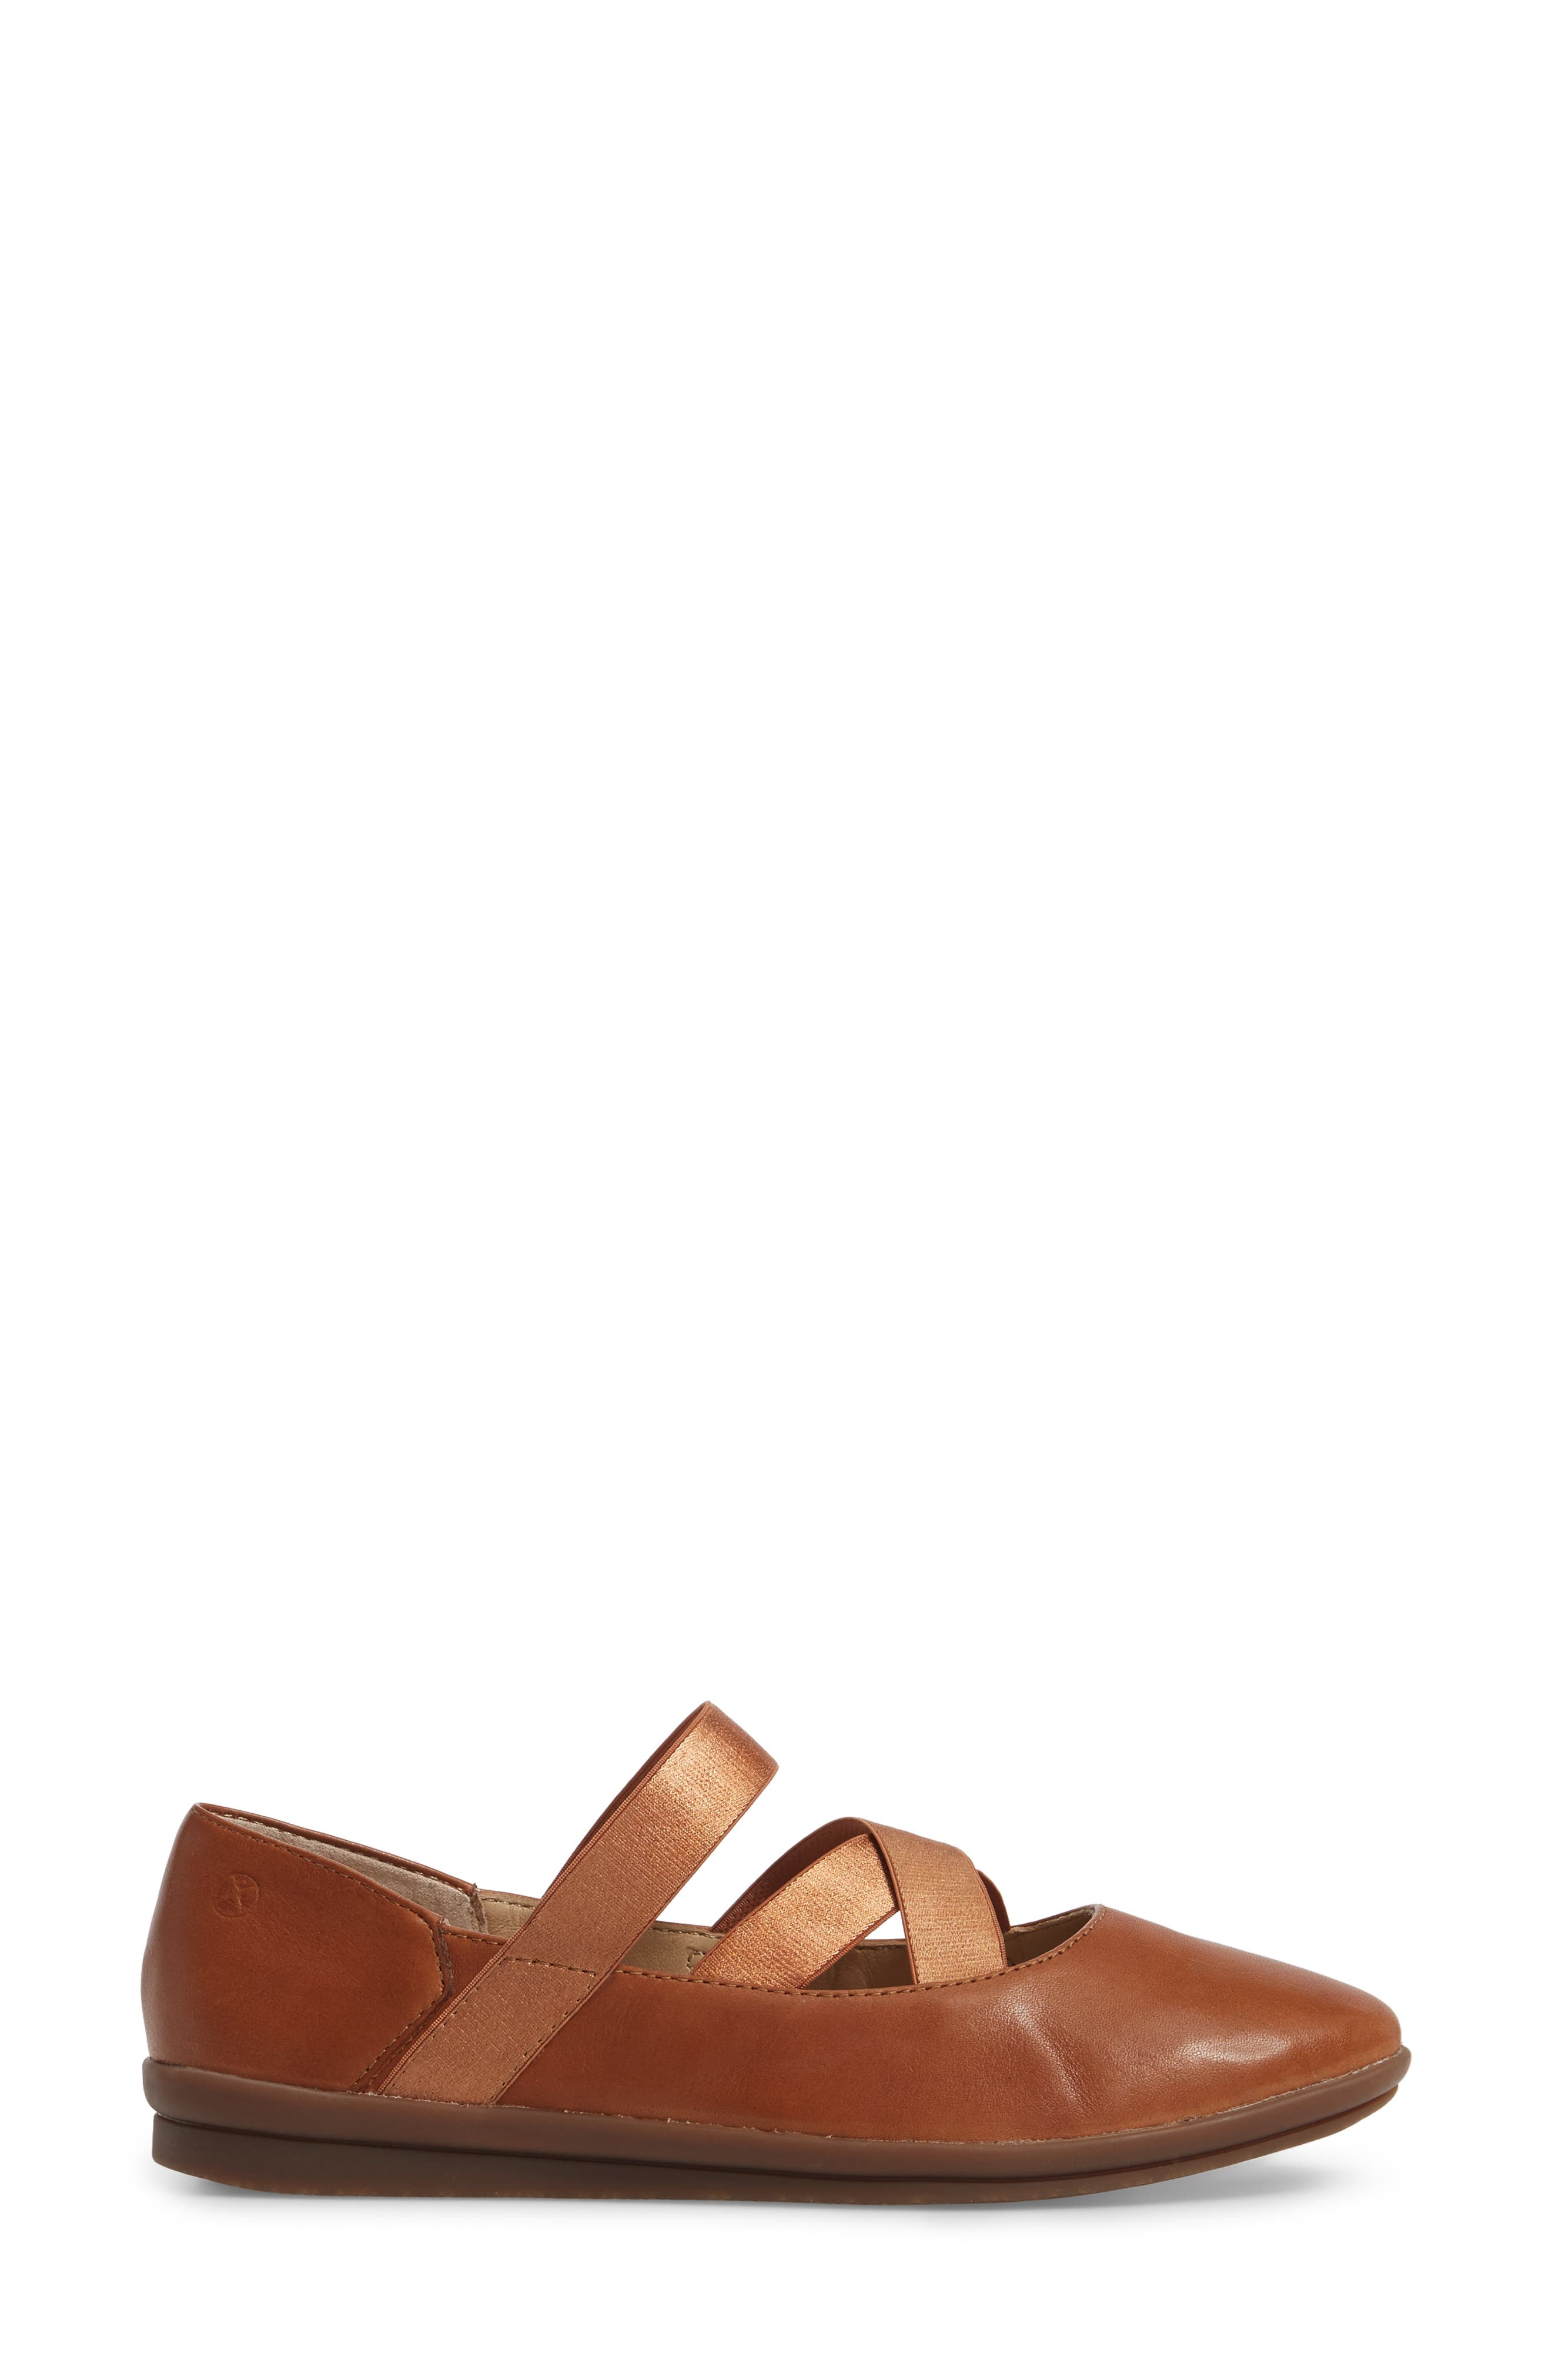 Meree Madrine Cross Strap Flat,                             Alternate thumbnail 11, color,